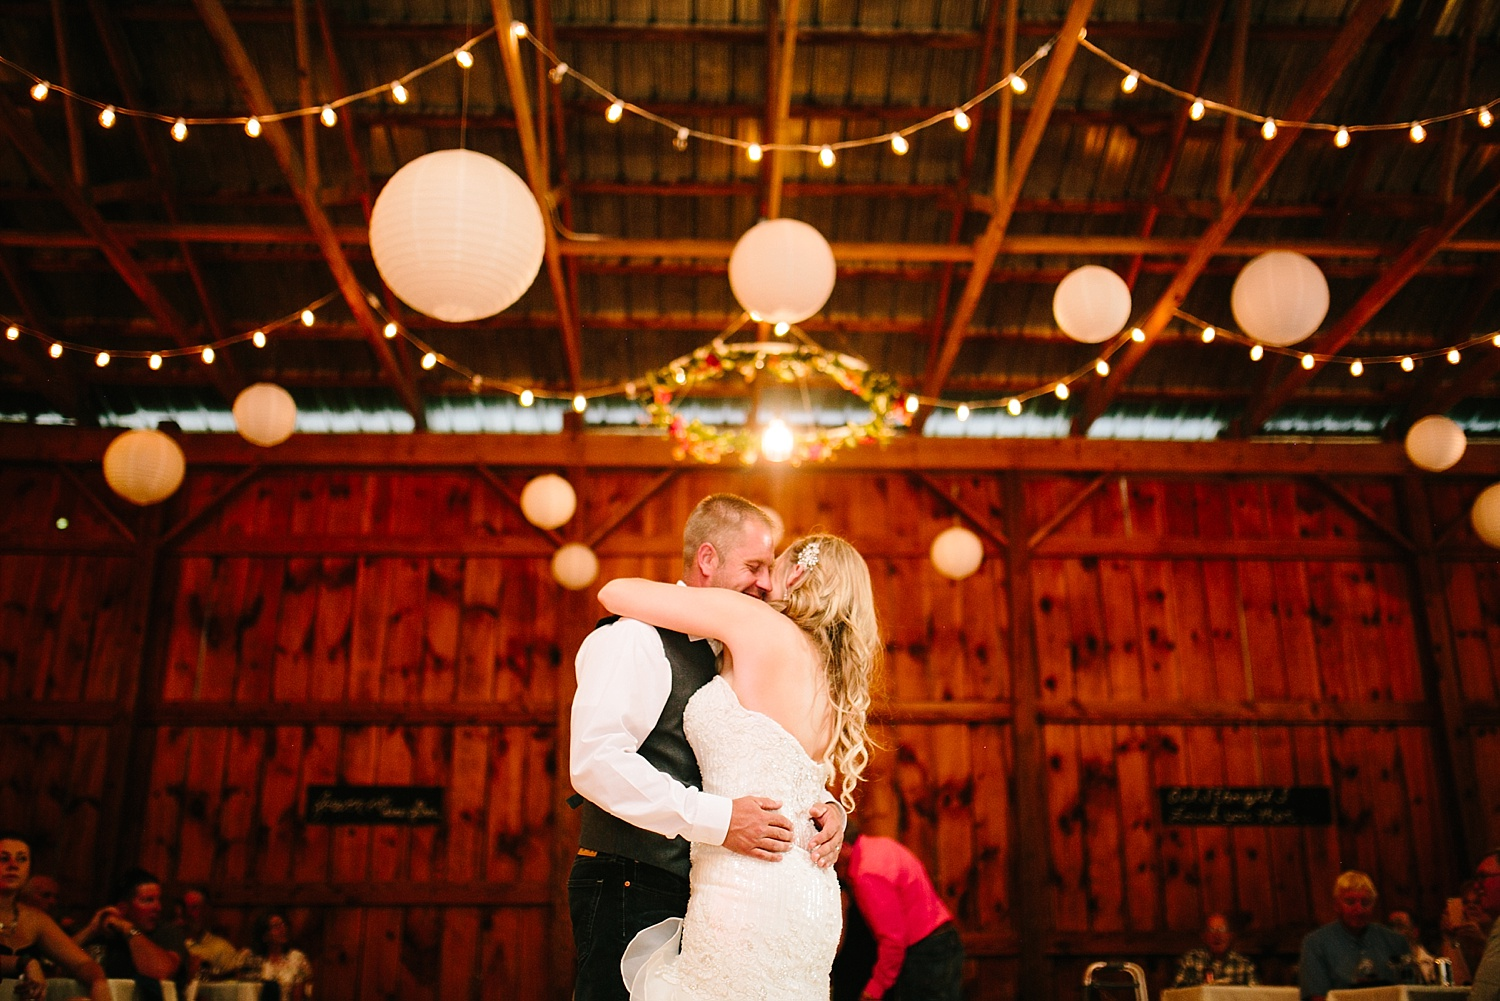 jennyryan_newbeginnings_farmstead_upstatenewyork_wedding_image121.jpg